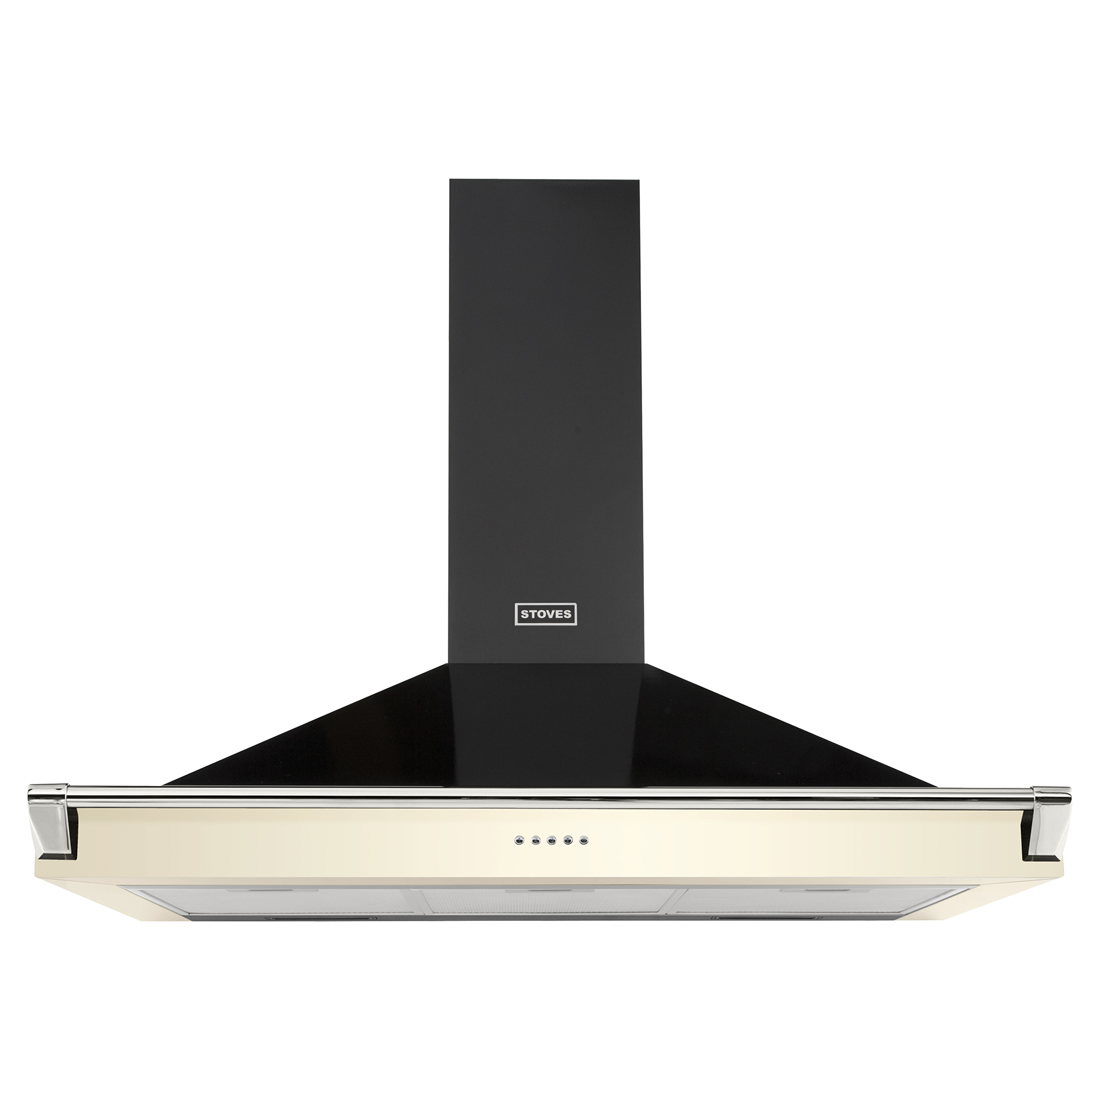 Image of 1000mm Chimney Cooker Hood with Rail 3-Speed Fan Cream